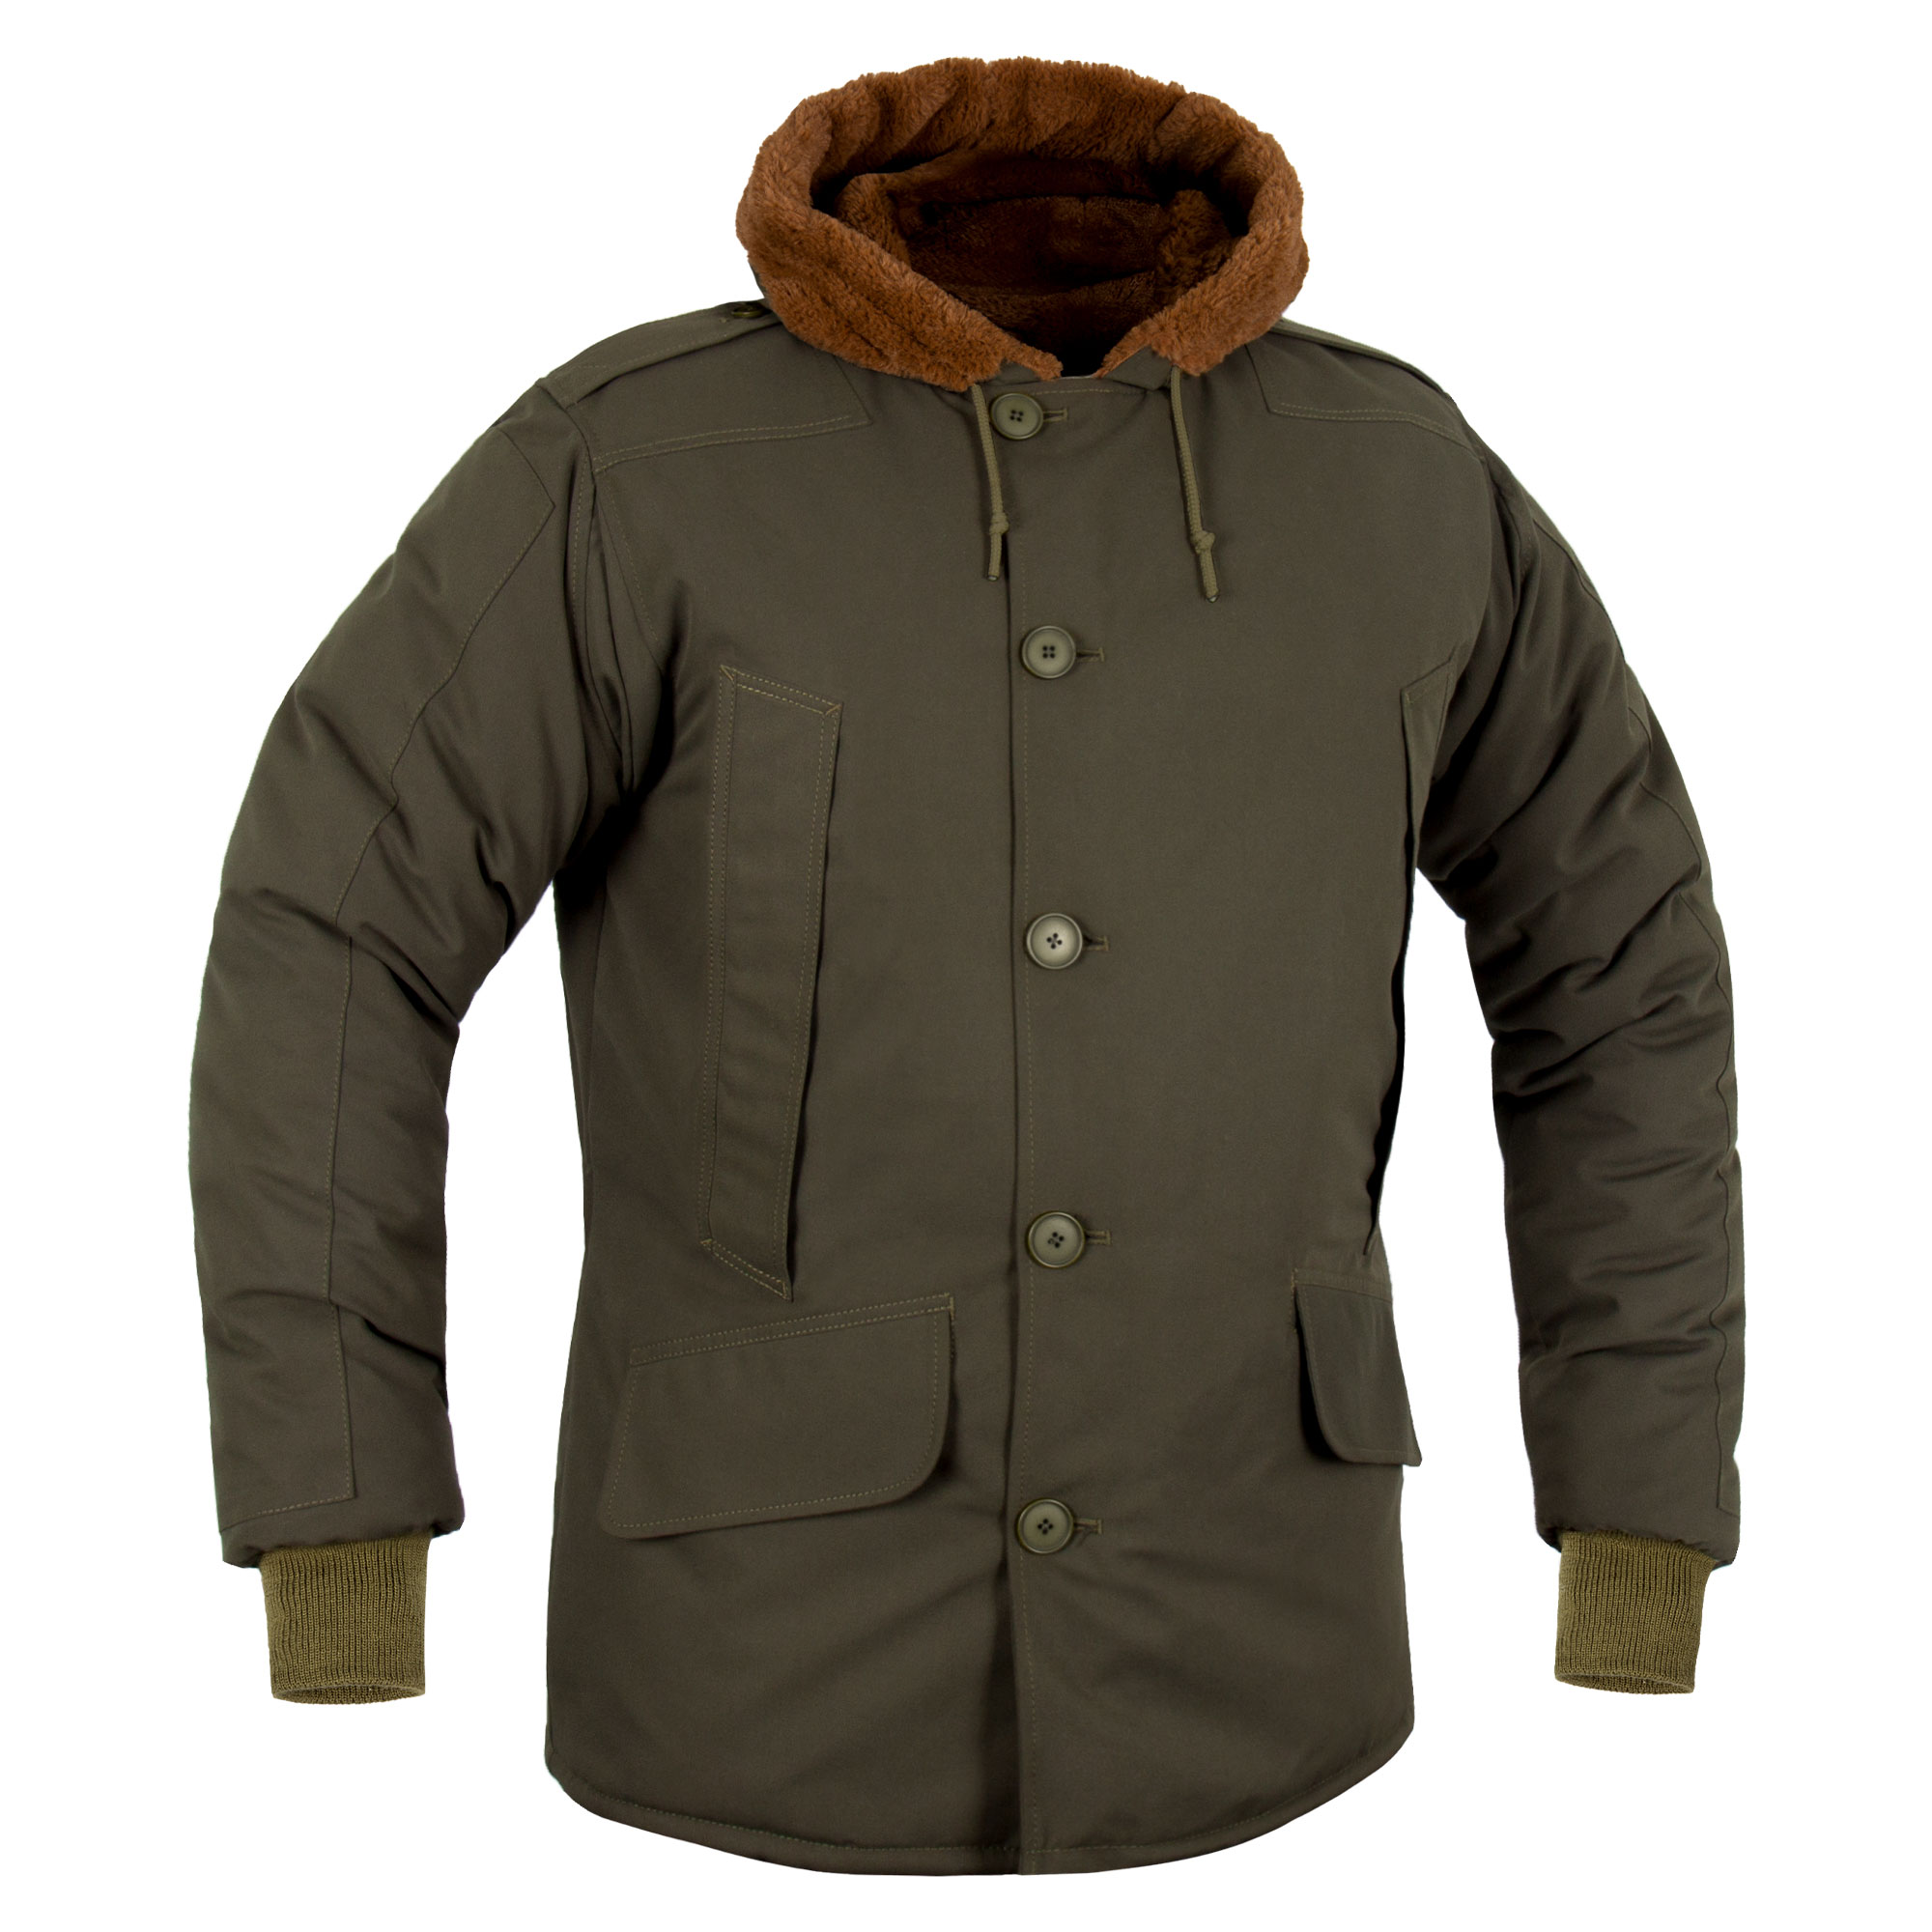 Cold weather parka